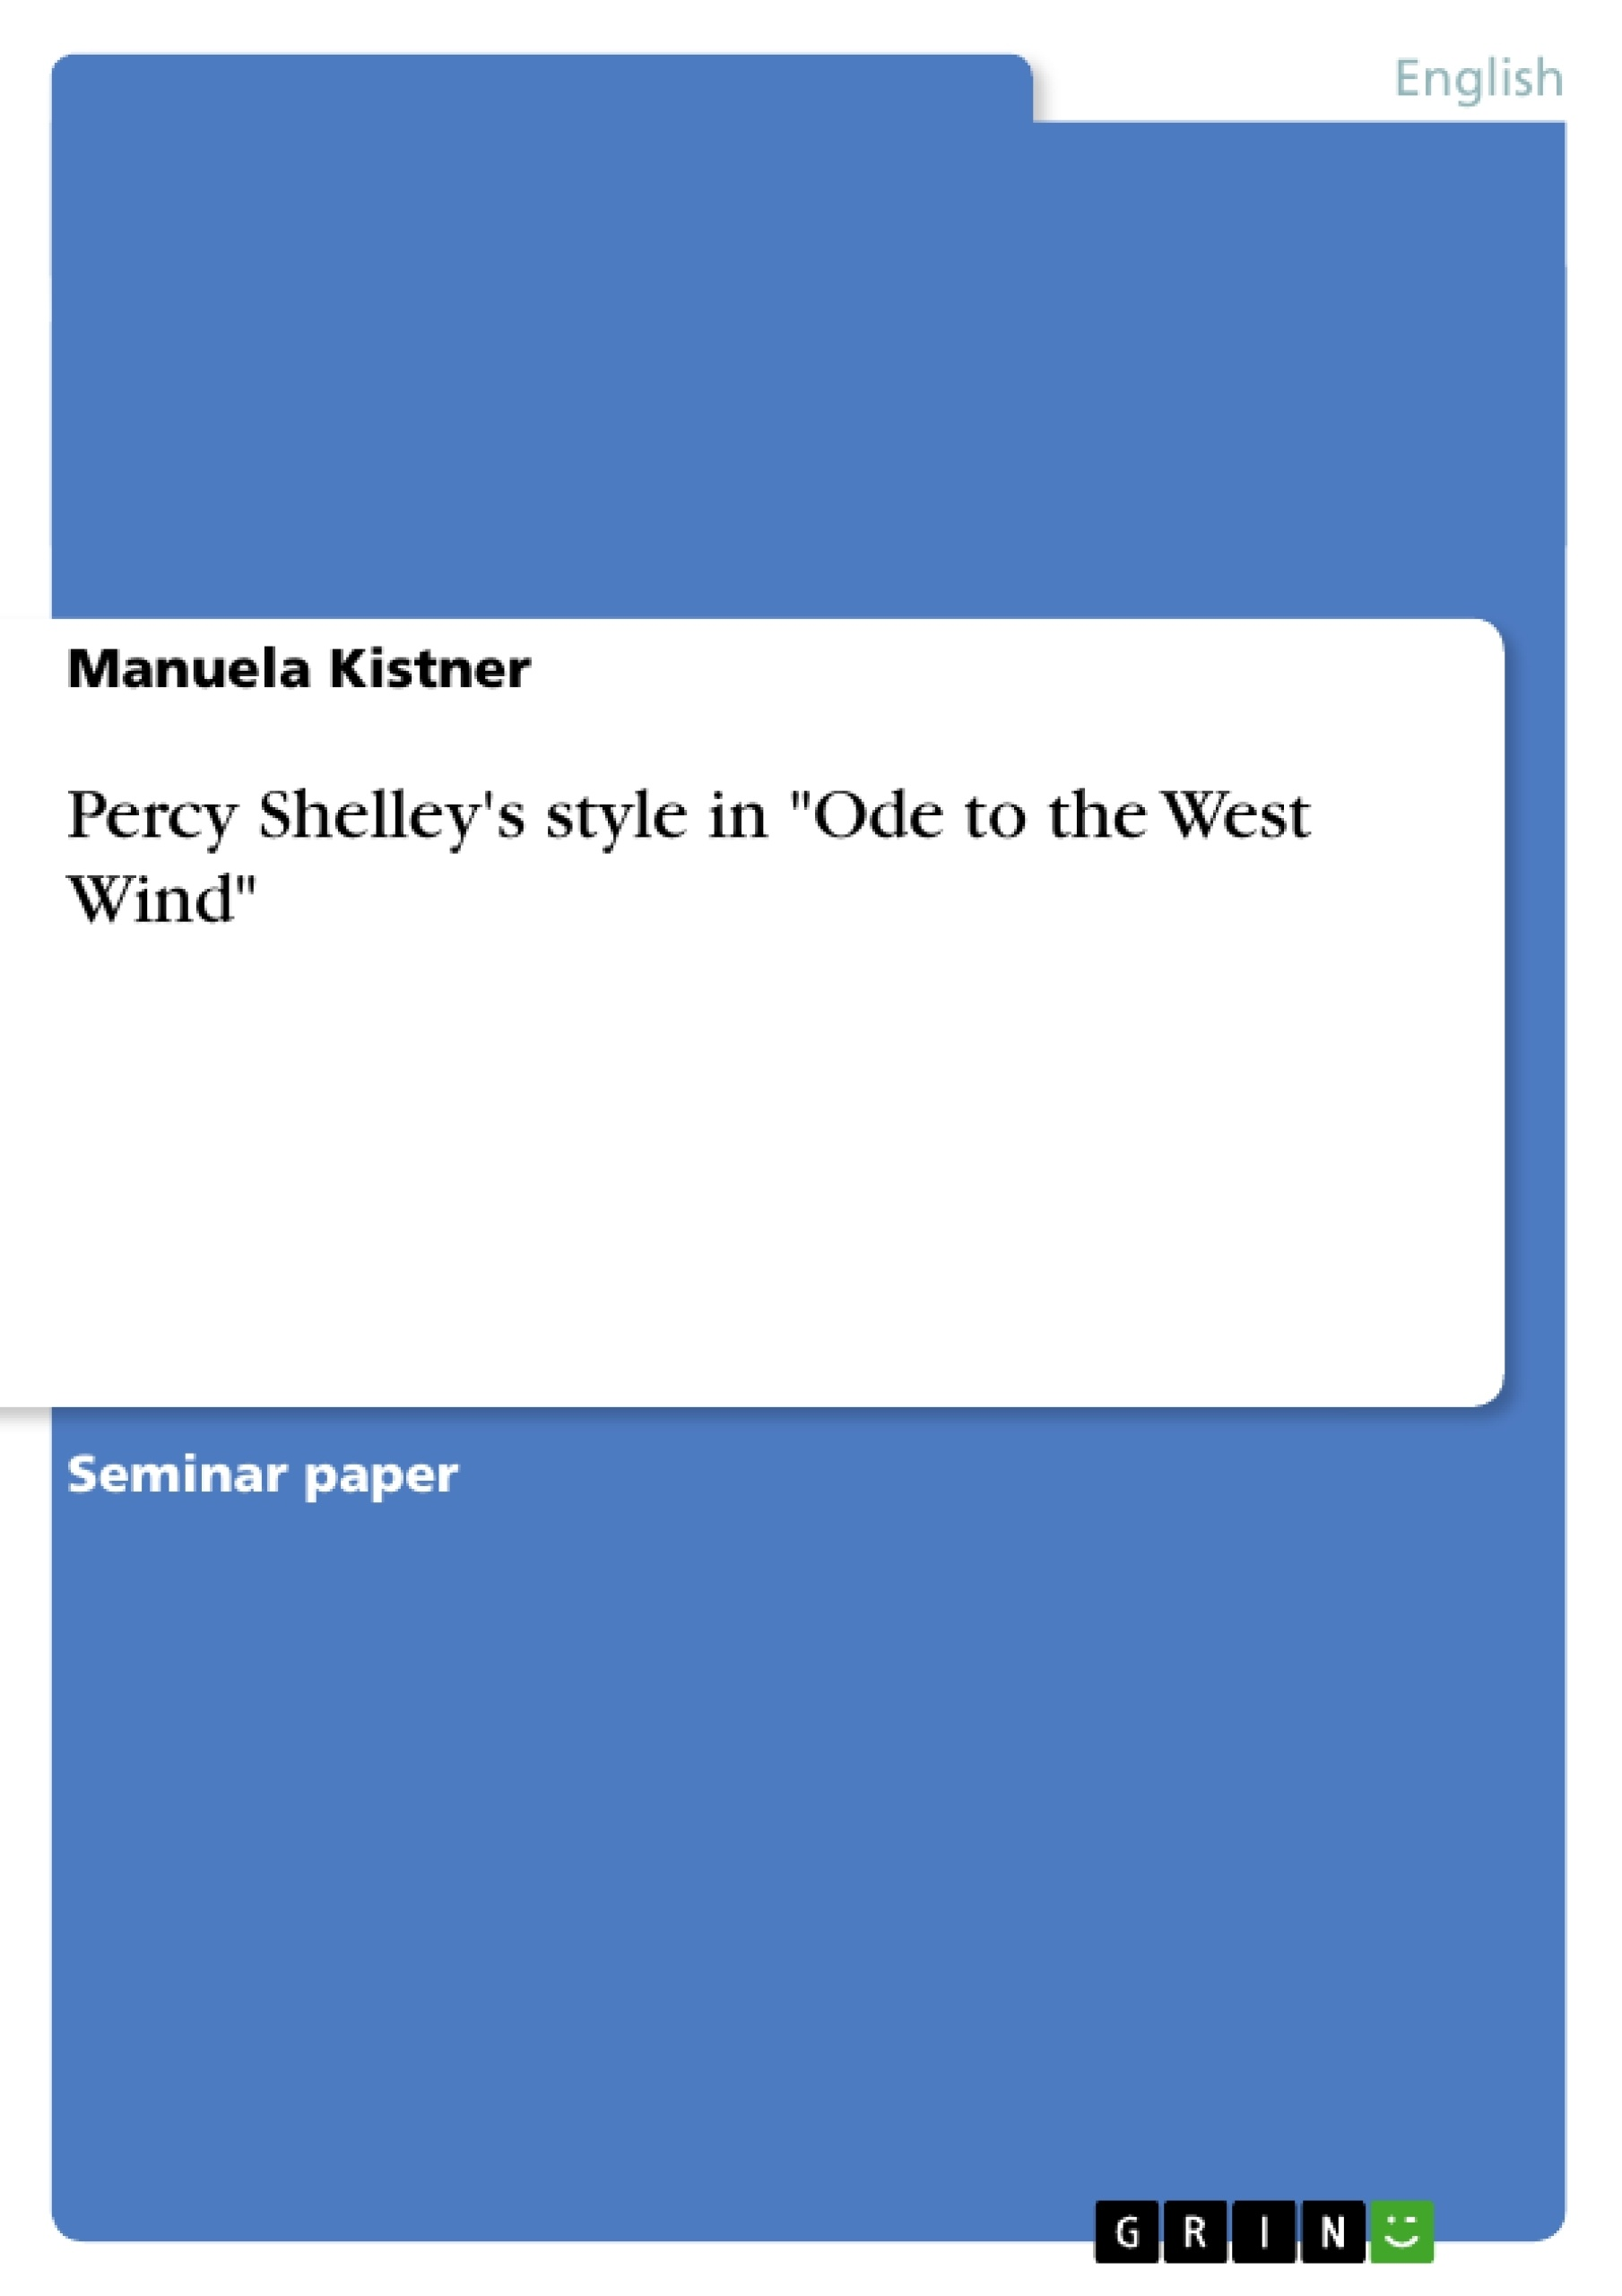 ode to the west wind poem pdf